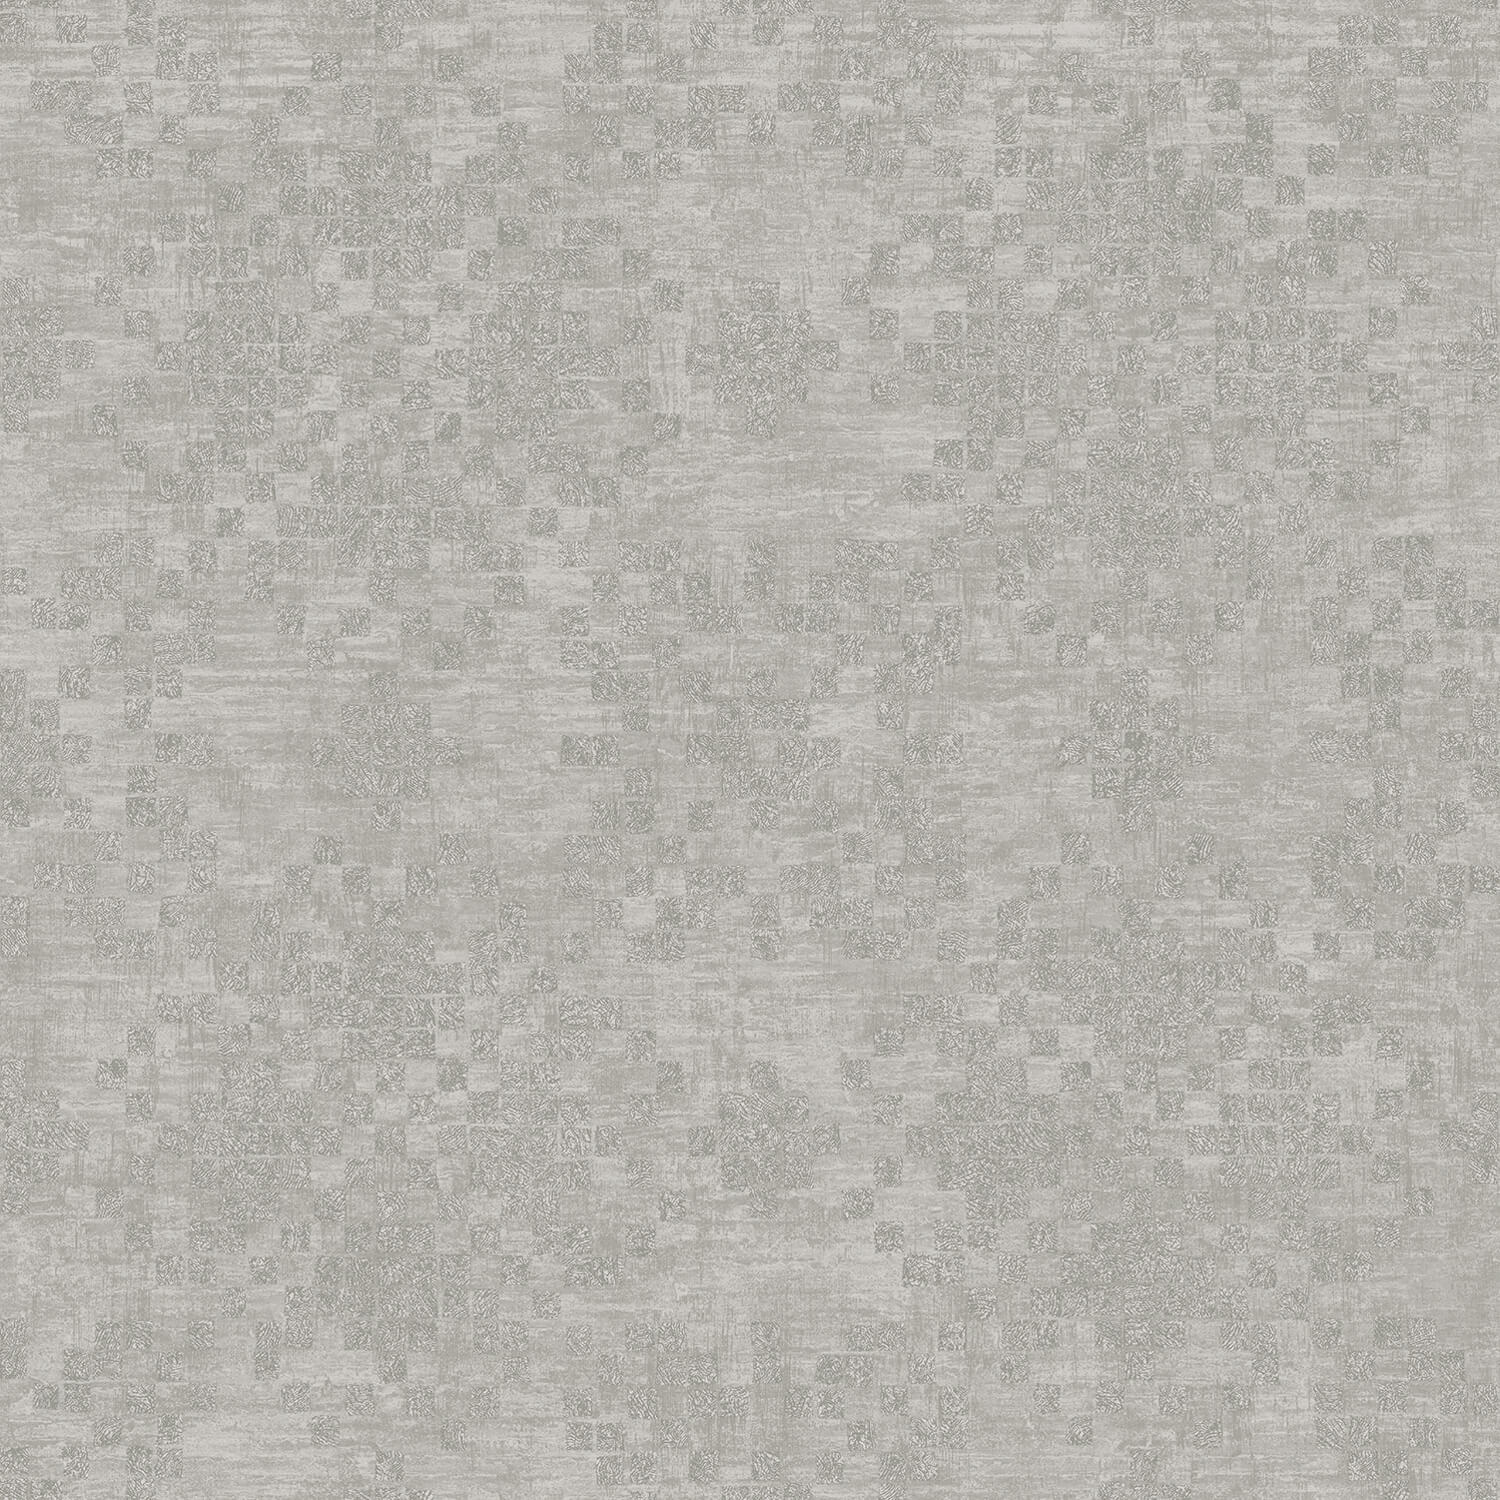 Image of Galerie Check Geometric Wallpaper, Silver/ Grey